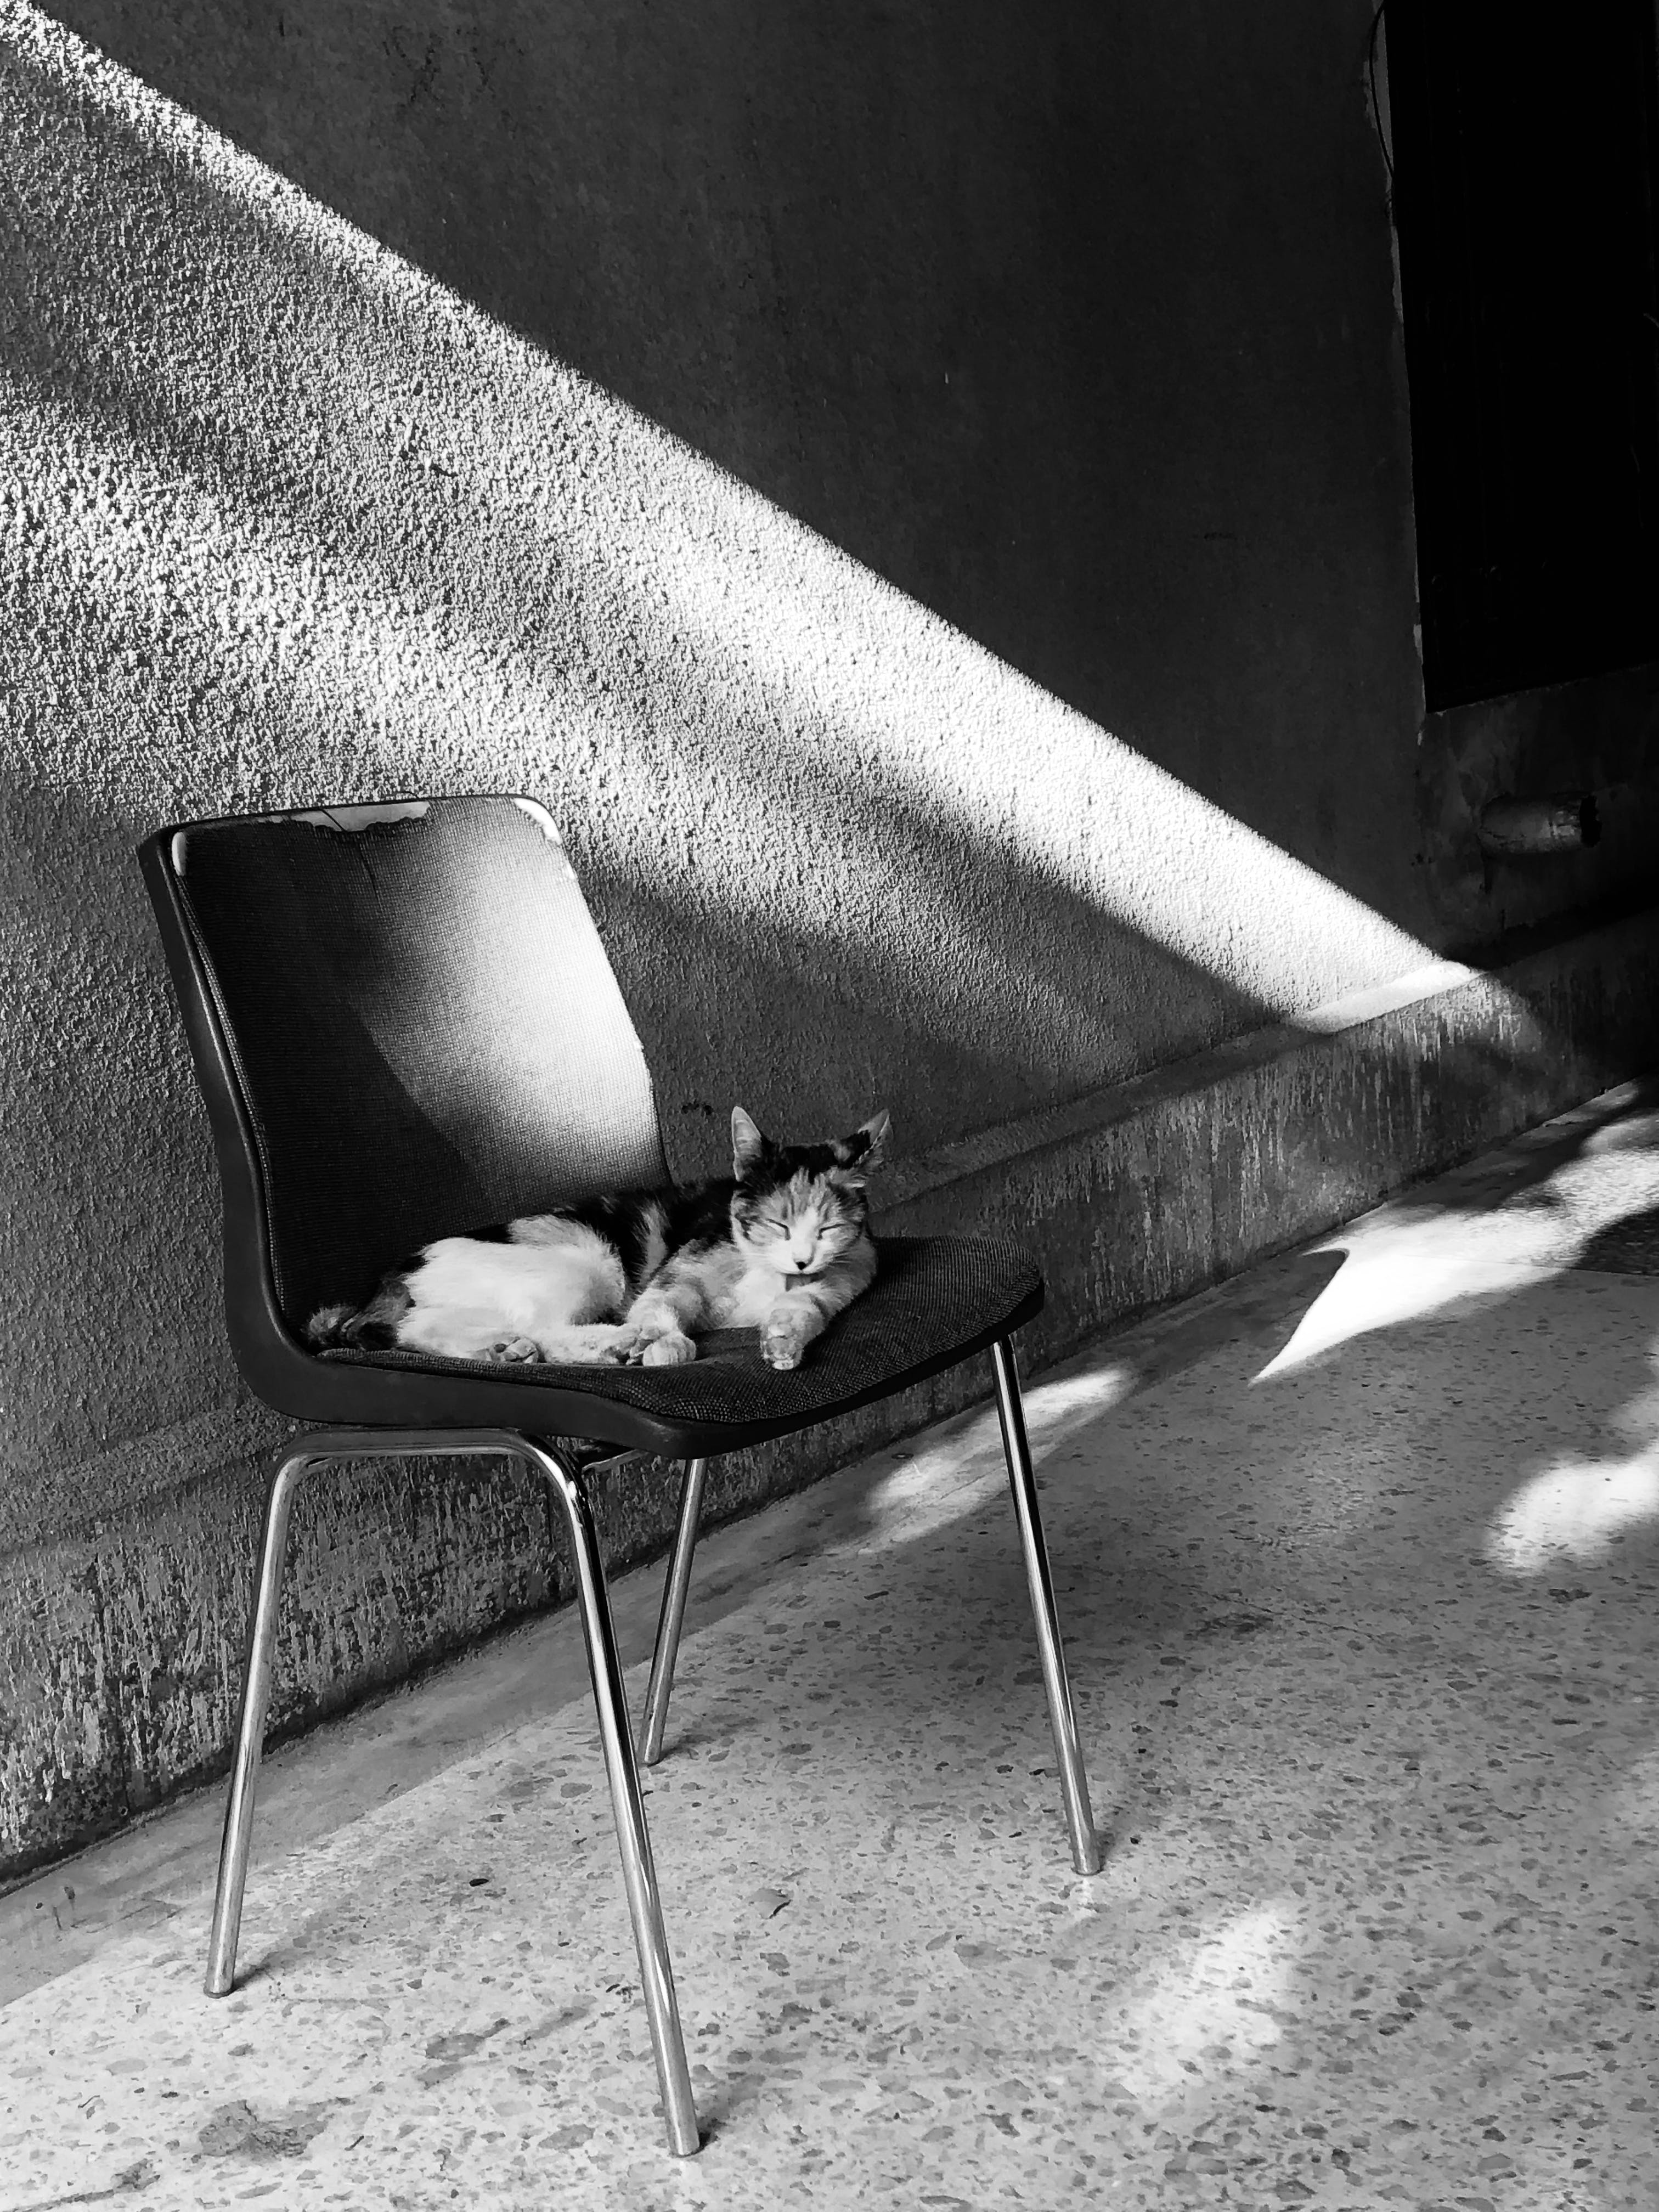 Grayscale Photography of Cat on Black Chair